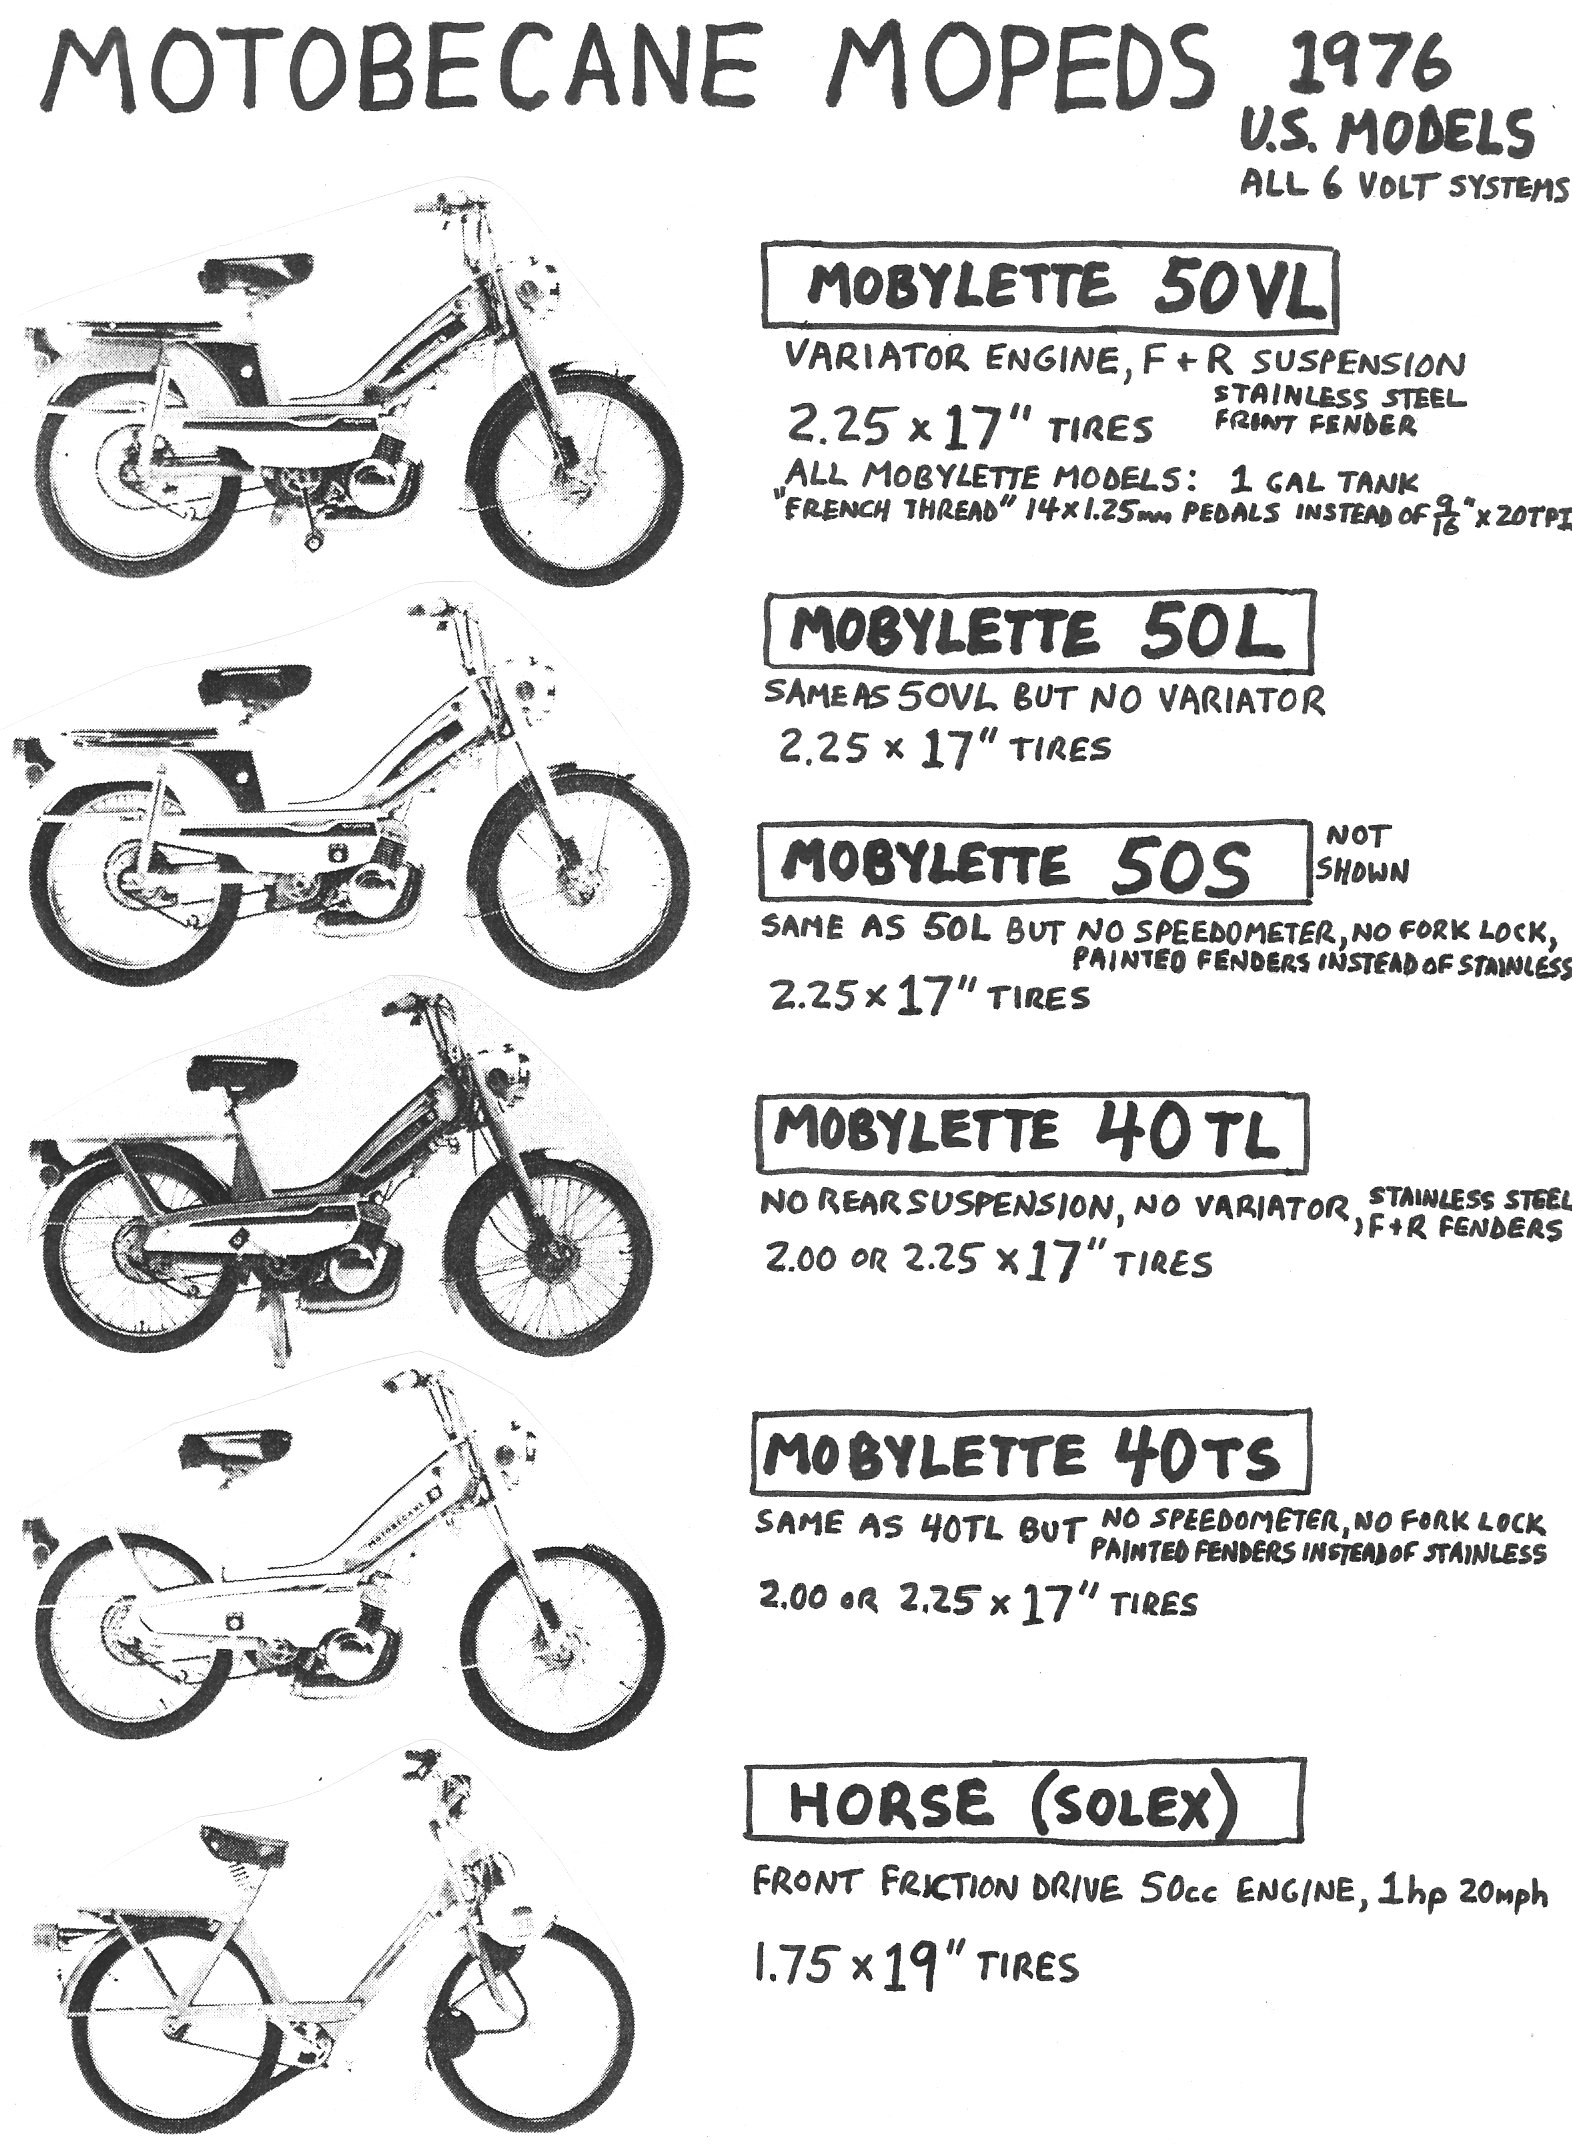 Motobecane Moped Wiring Diagram Just Another Blog Ignition Parts Myrons Mopeds Rh Myronsmopeds Com 50cc Scooter Gy6